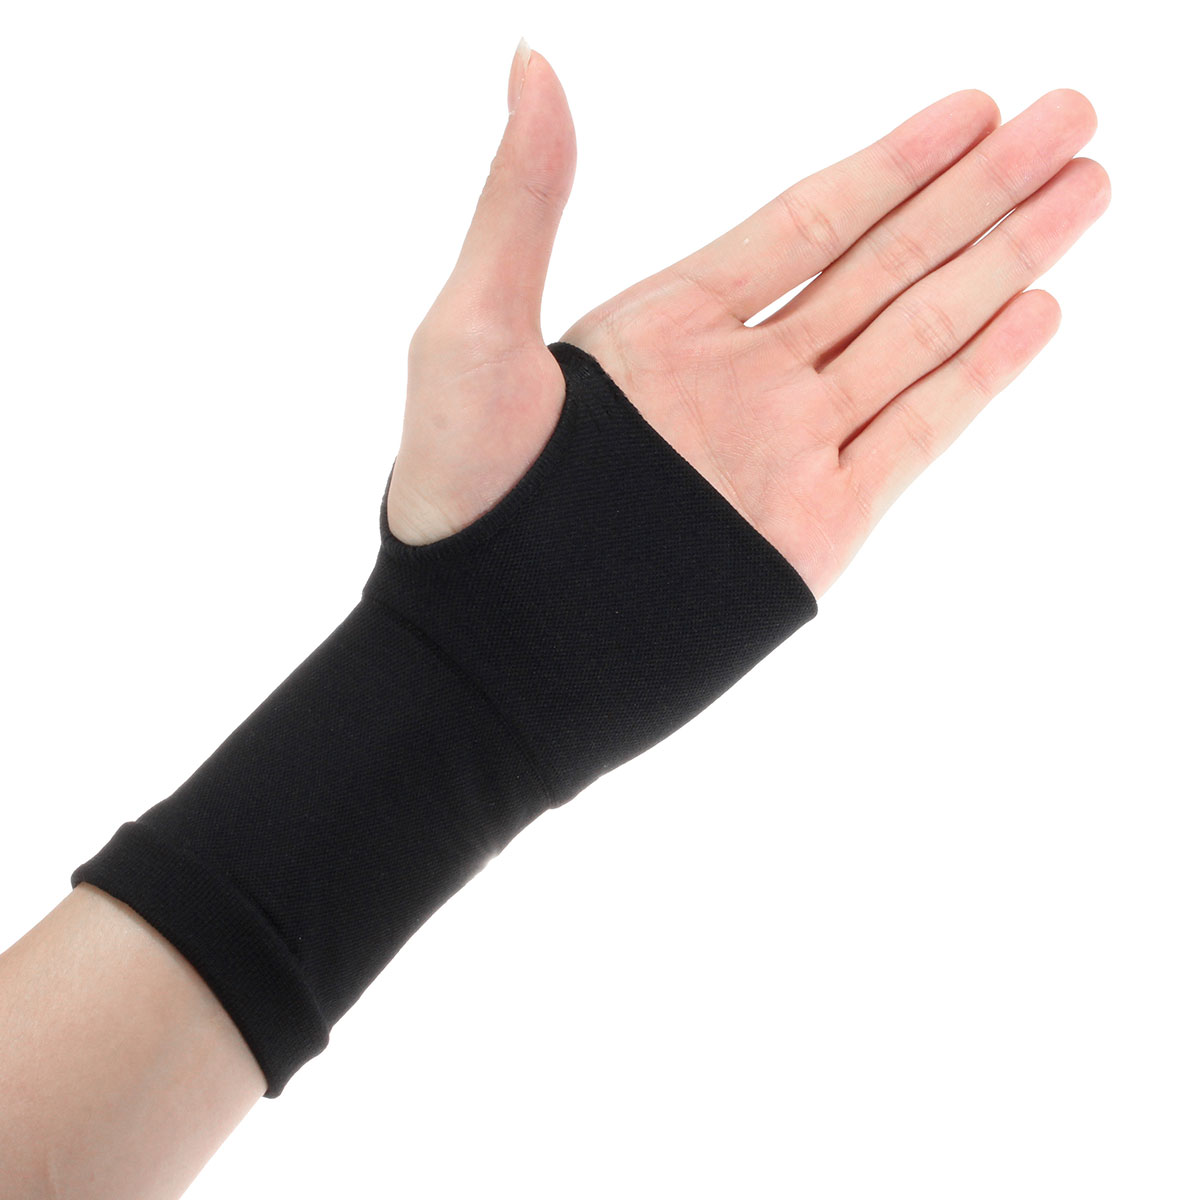 Wrist support for Palms Wrist Hand Support Glove Elastic Brace Sleeve Sports Bandage Gym for Wrap wrist bandage brace Support